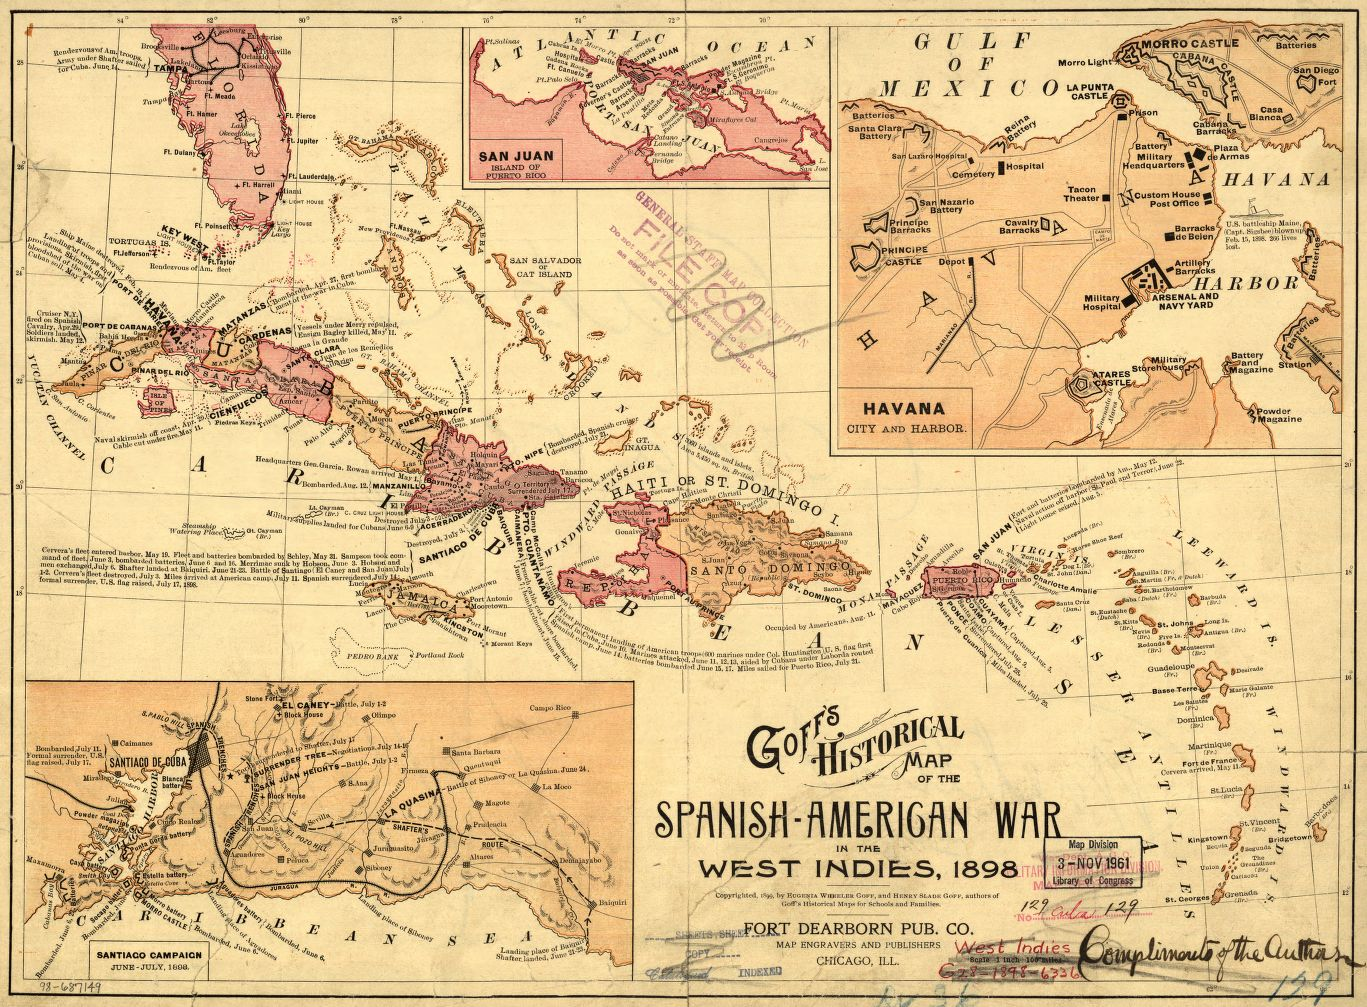 "#DYK ""Banana Wars"" was used to describe the US interventions in Central America during the Spanish-American War?   https://t.co/MMr7zss1b4 https://t.co/oh4XynvjMX"